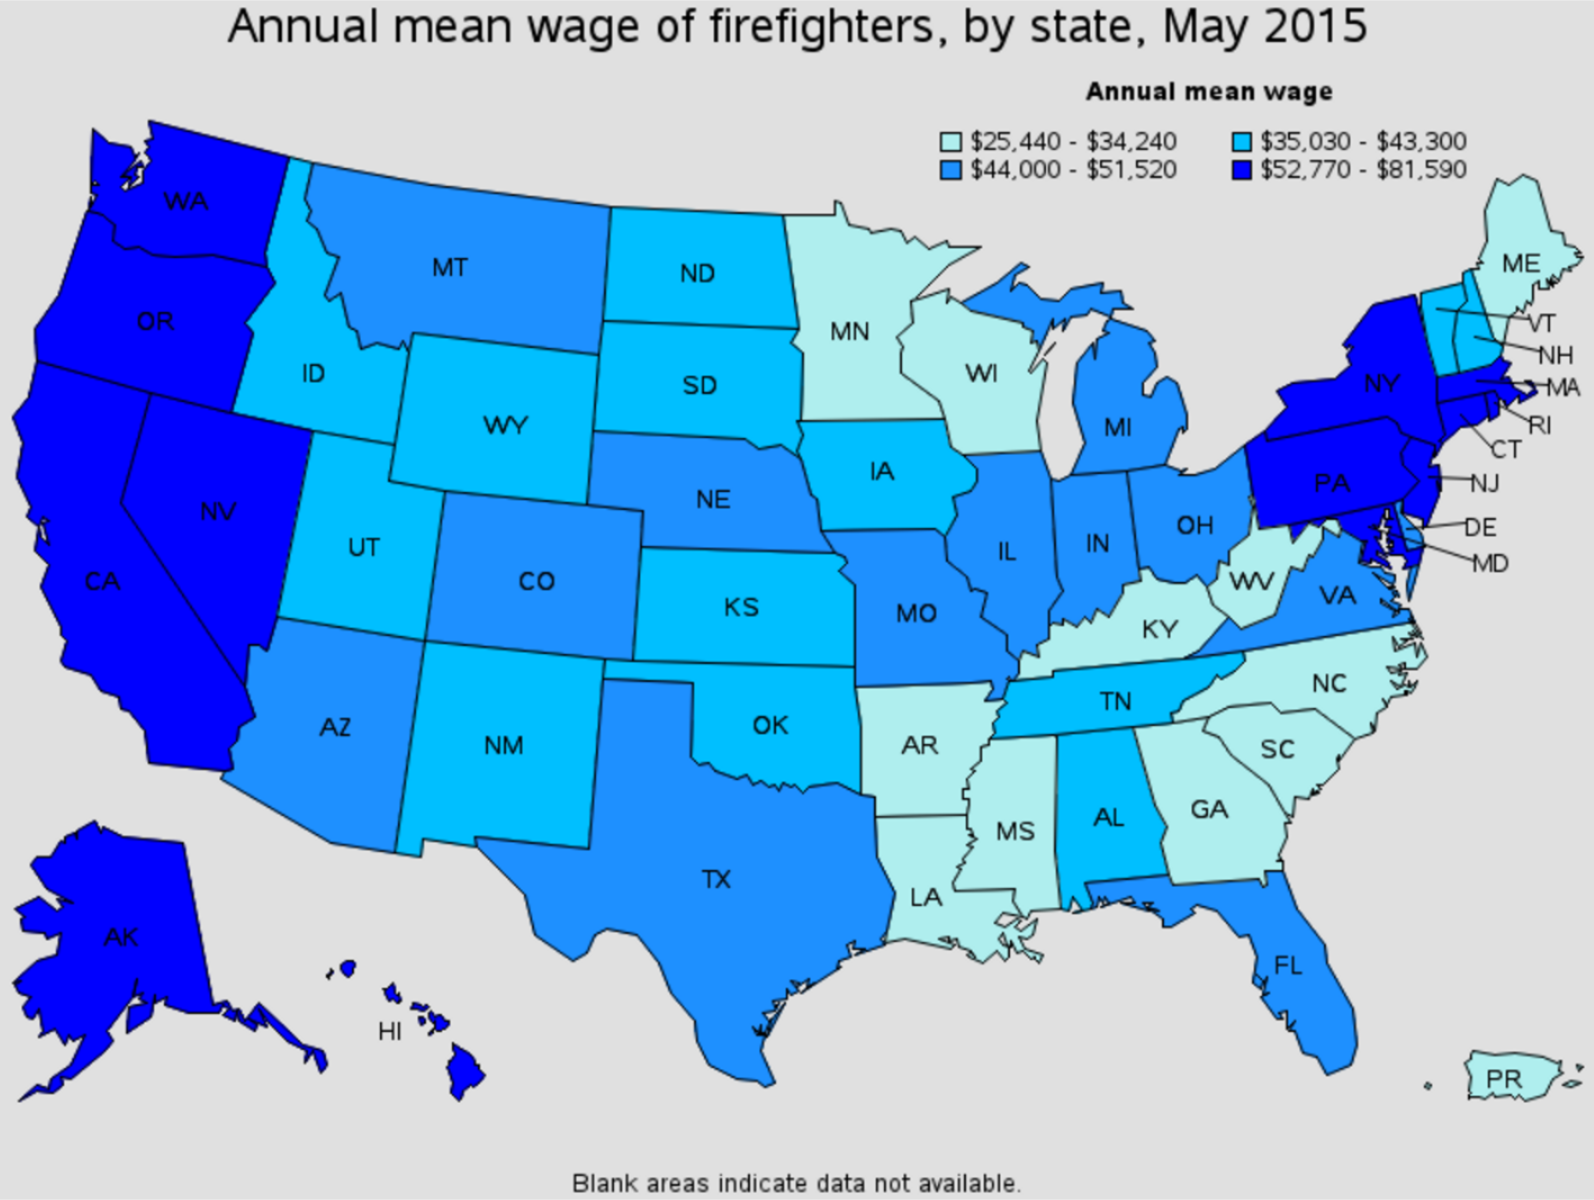 firefighter average salary by state Tucumcari New Mexico